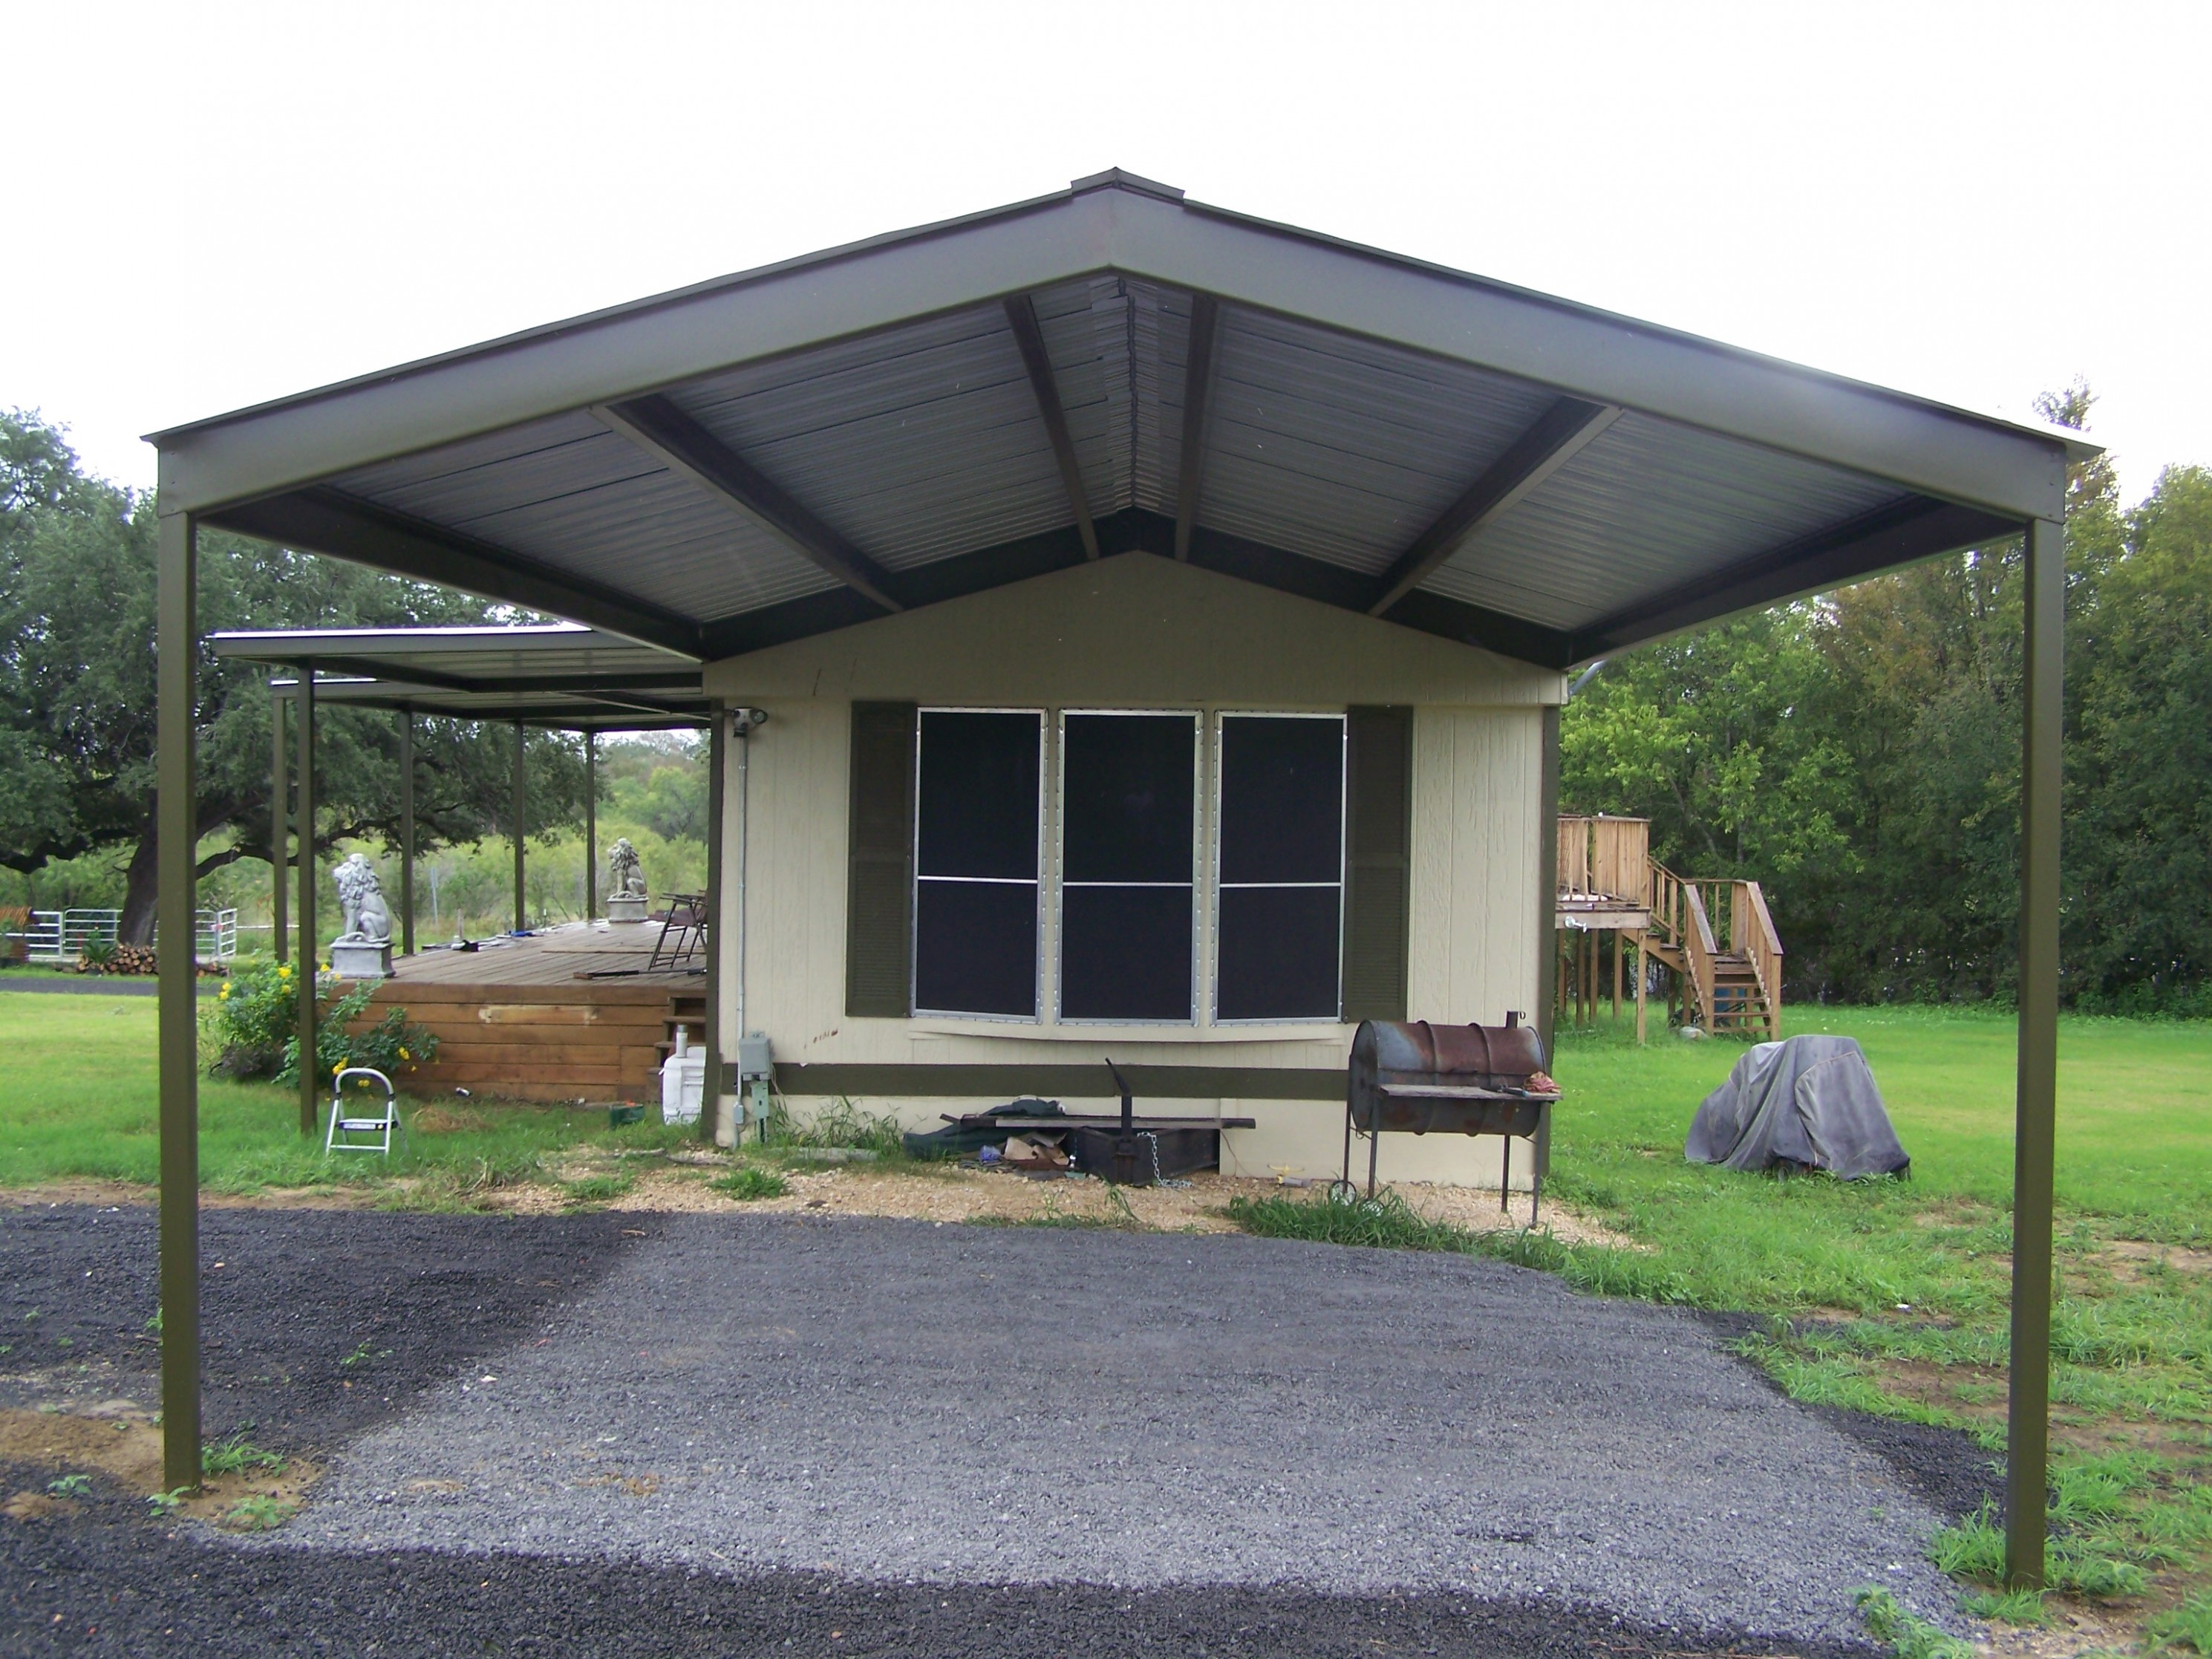 12 Things That Happen When You Are In Home Carport | home carport